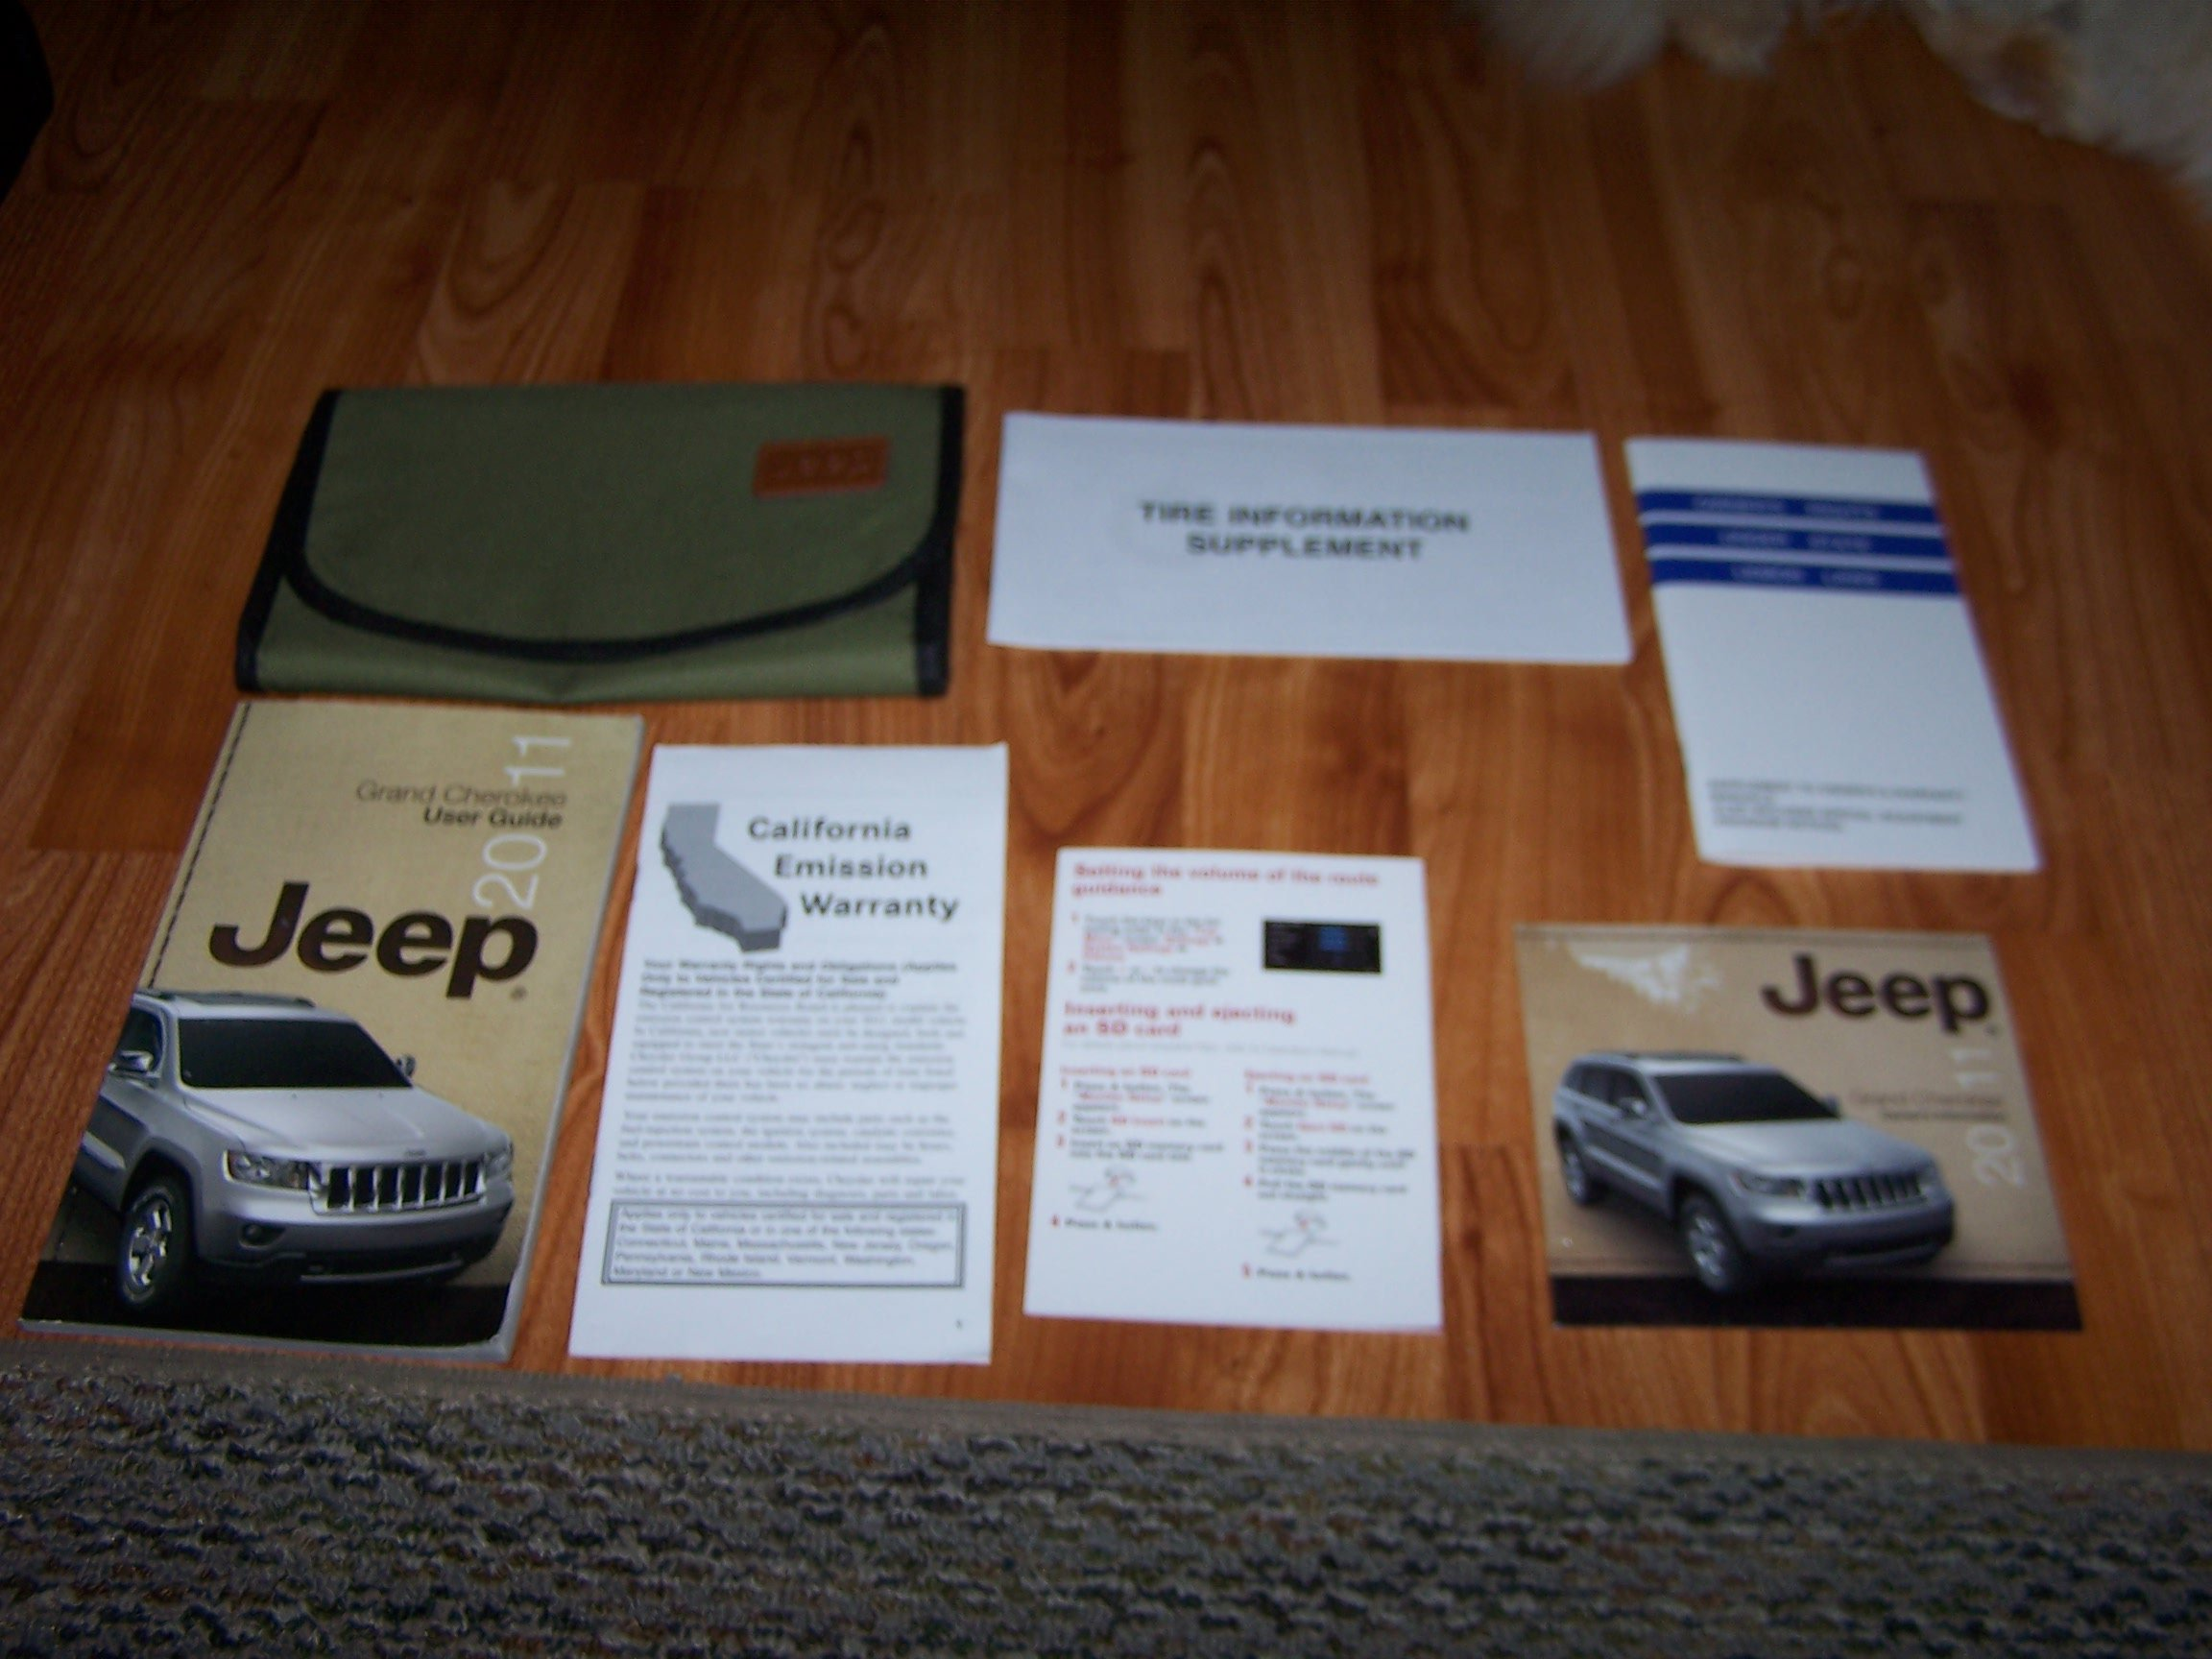 2011 jeep laredo owners manual daily instruction manual guides u2022 rh testingwordpress co 2011 jeep grand cherokee owners manual 2012 jeep grand cherokee service manual